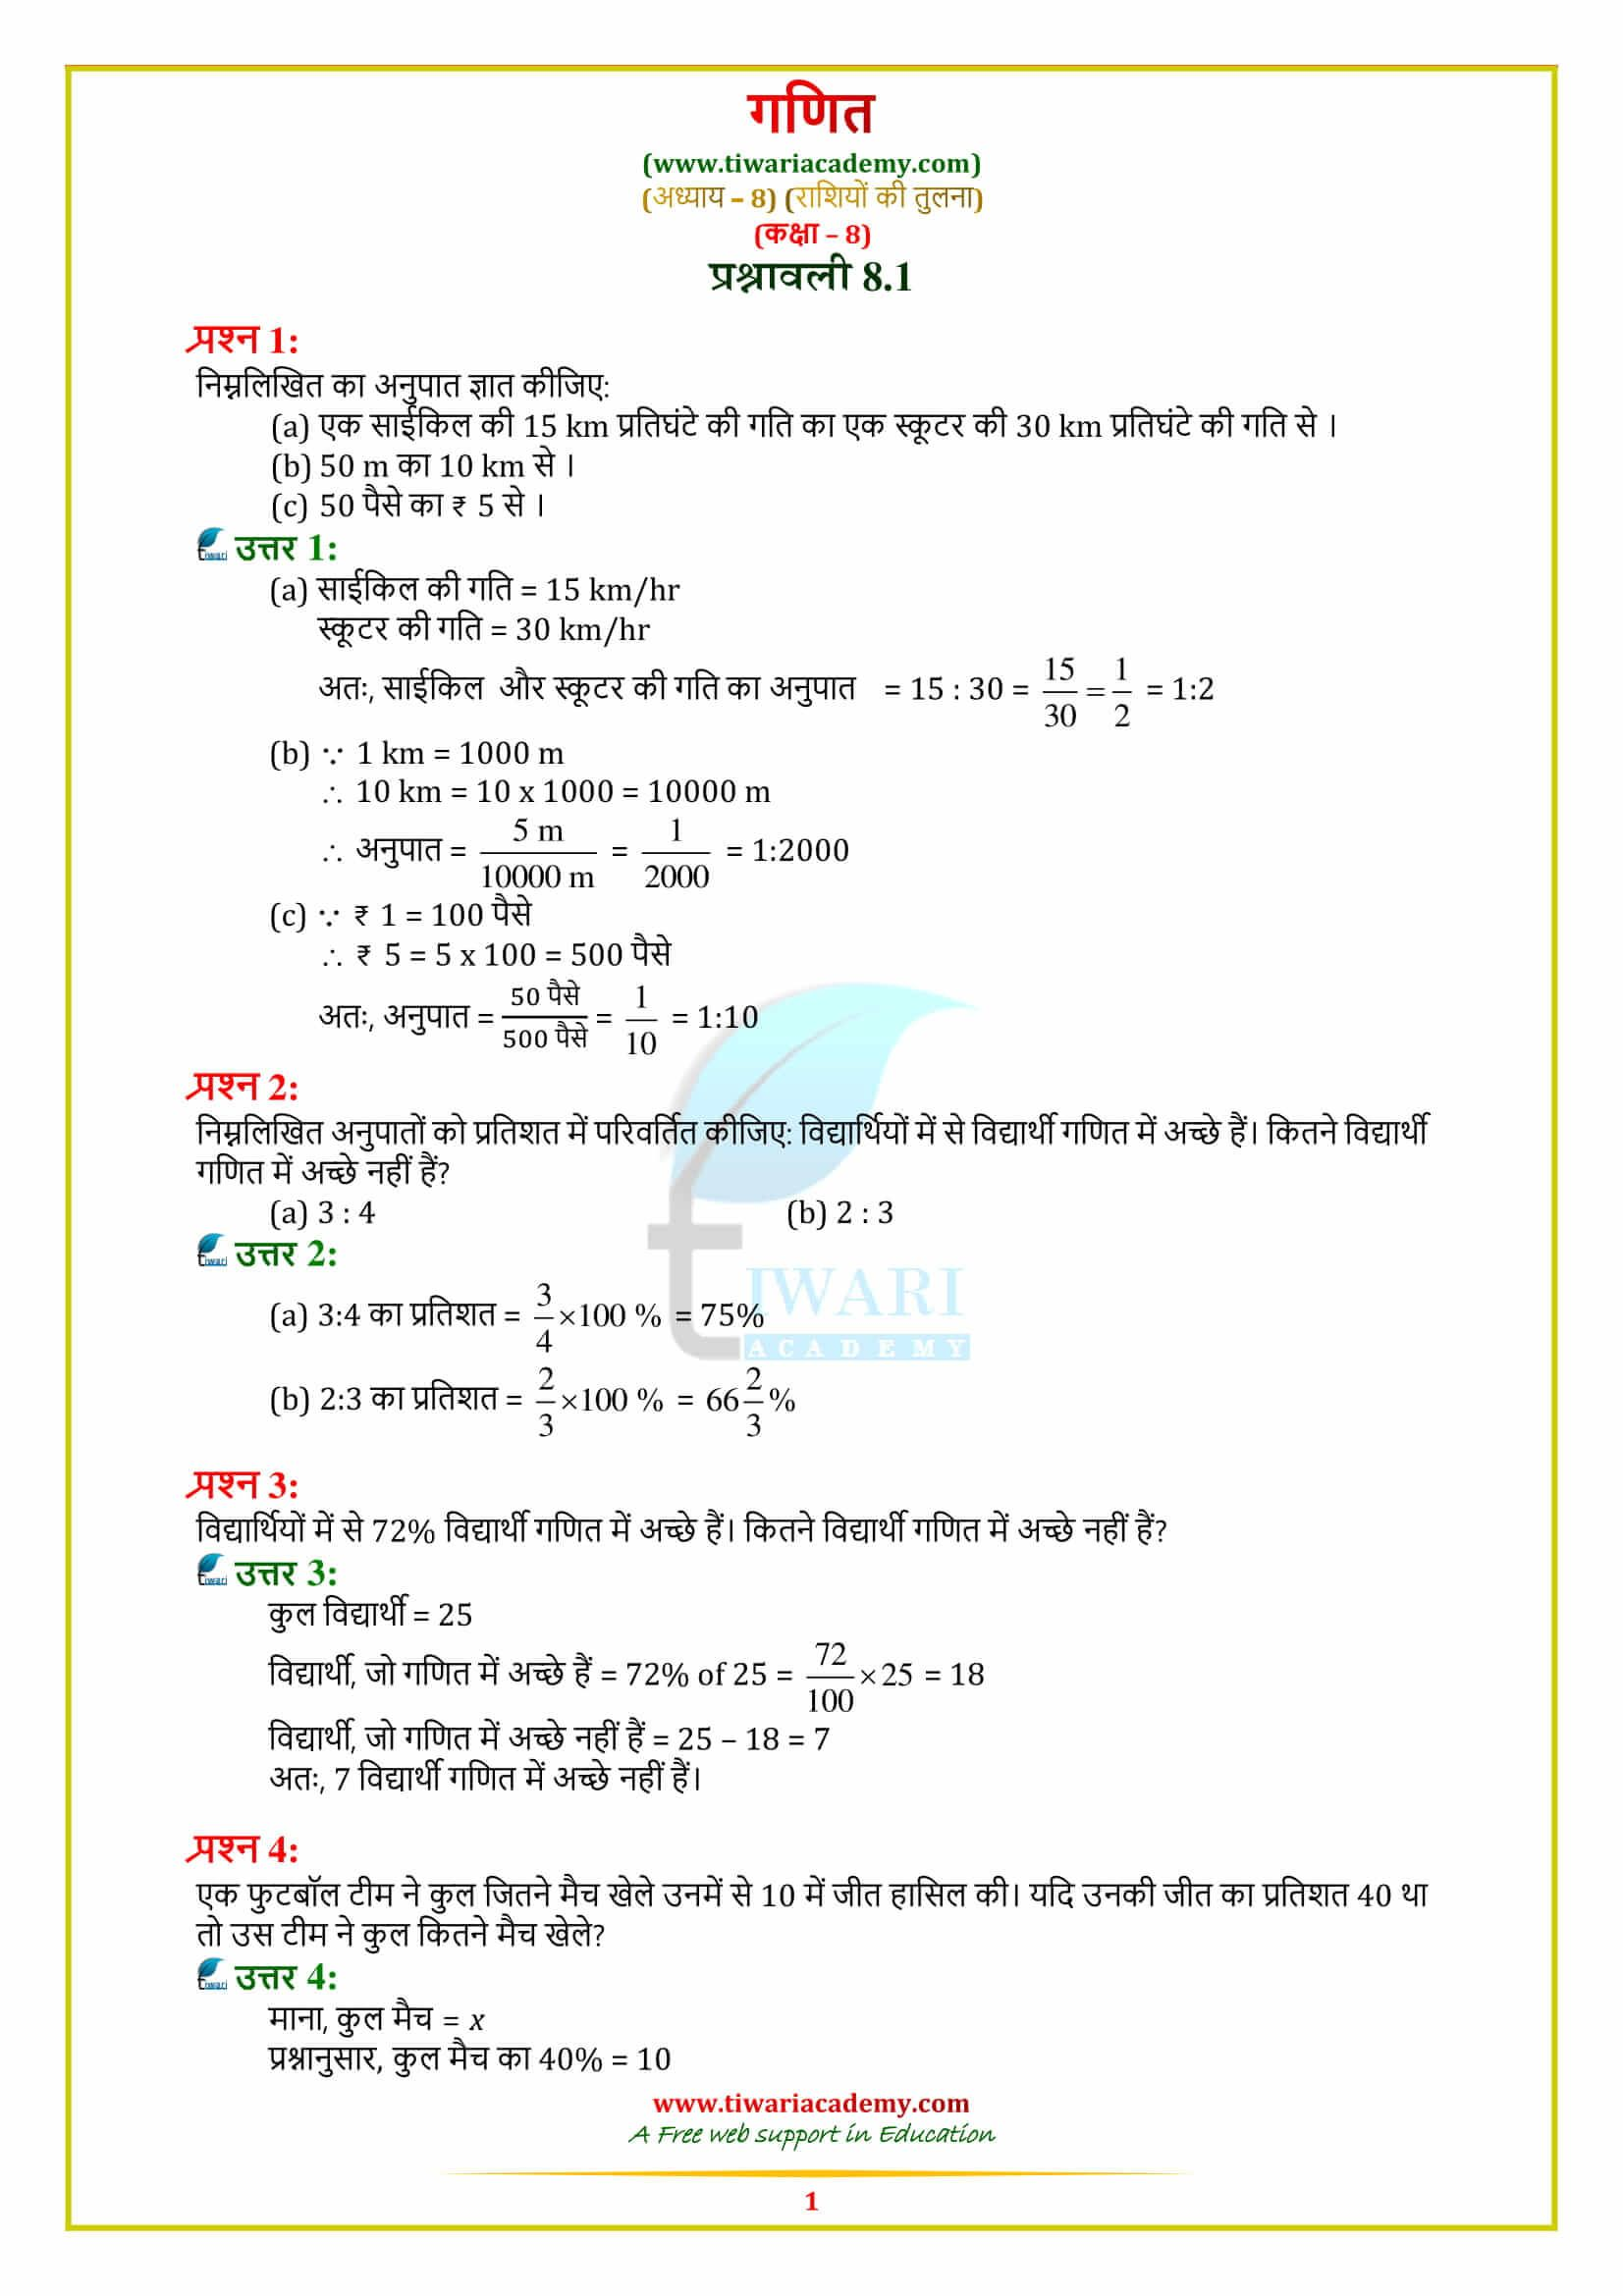 Teach Child How To Read Science Worksheets For Grade 8